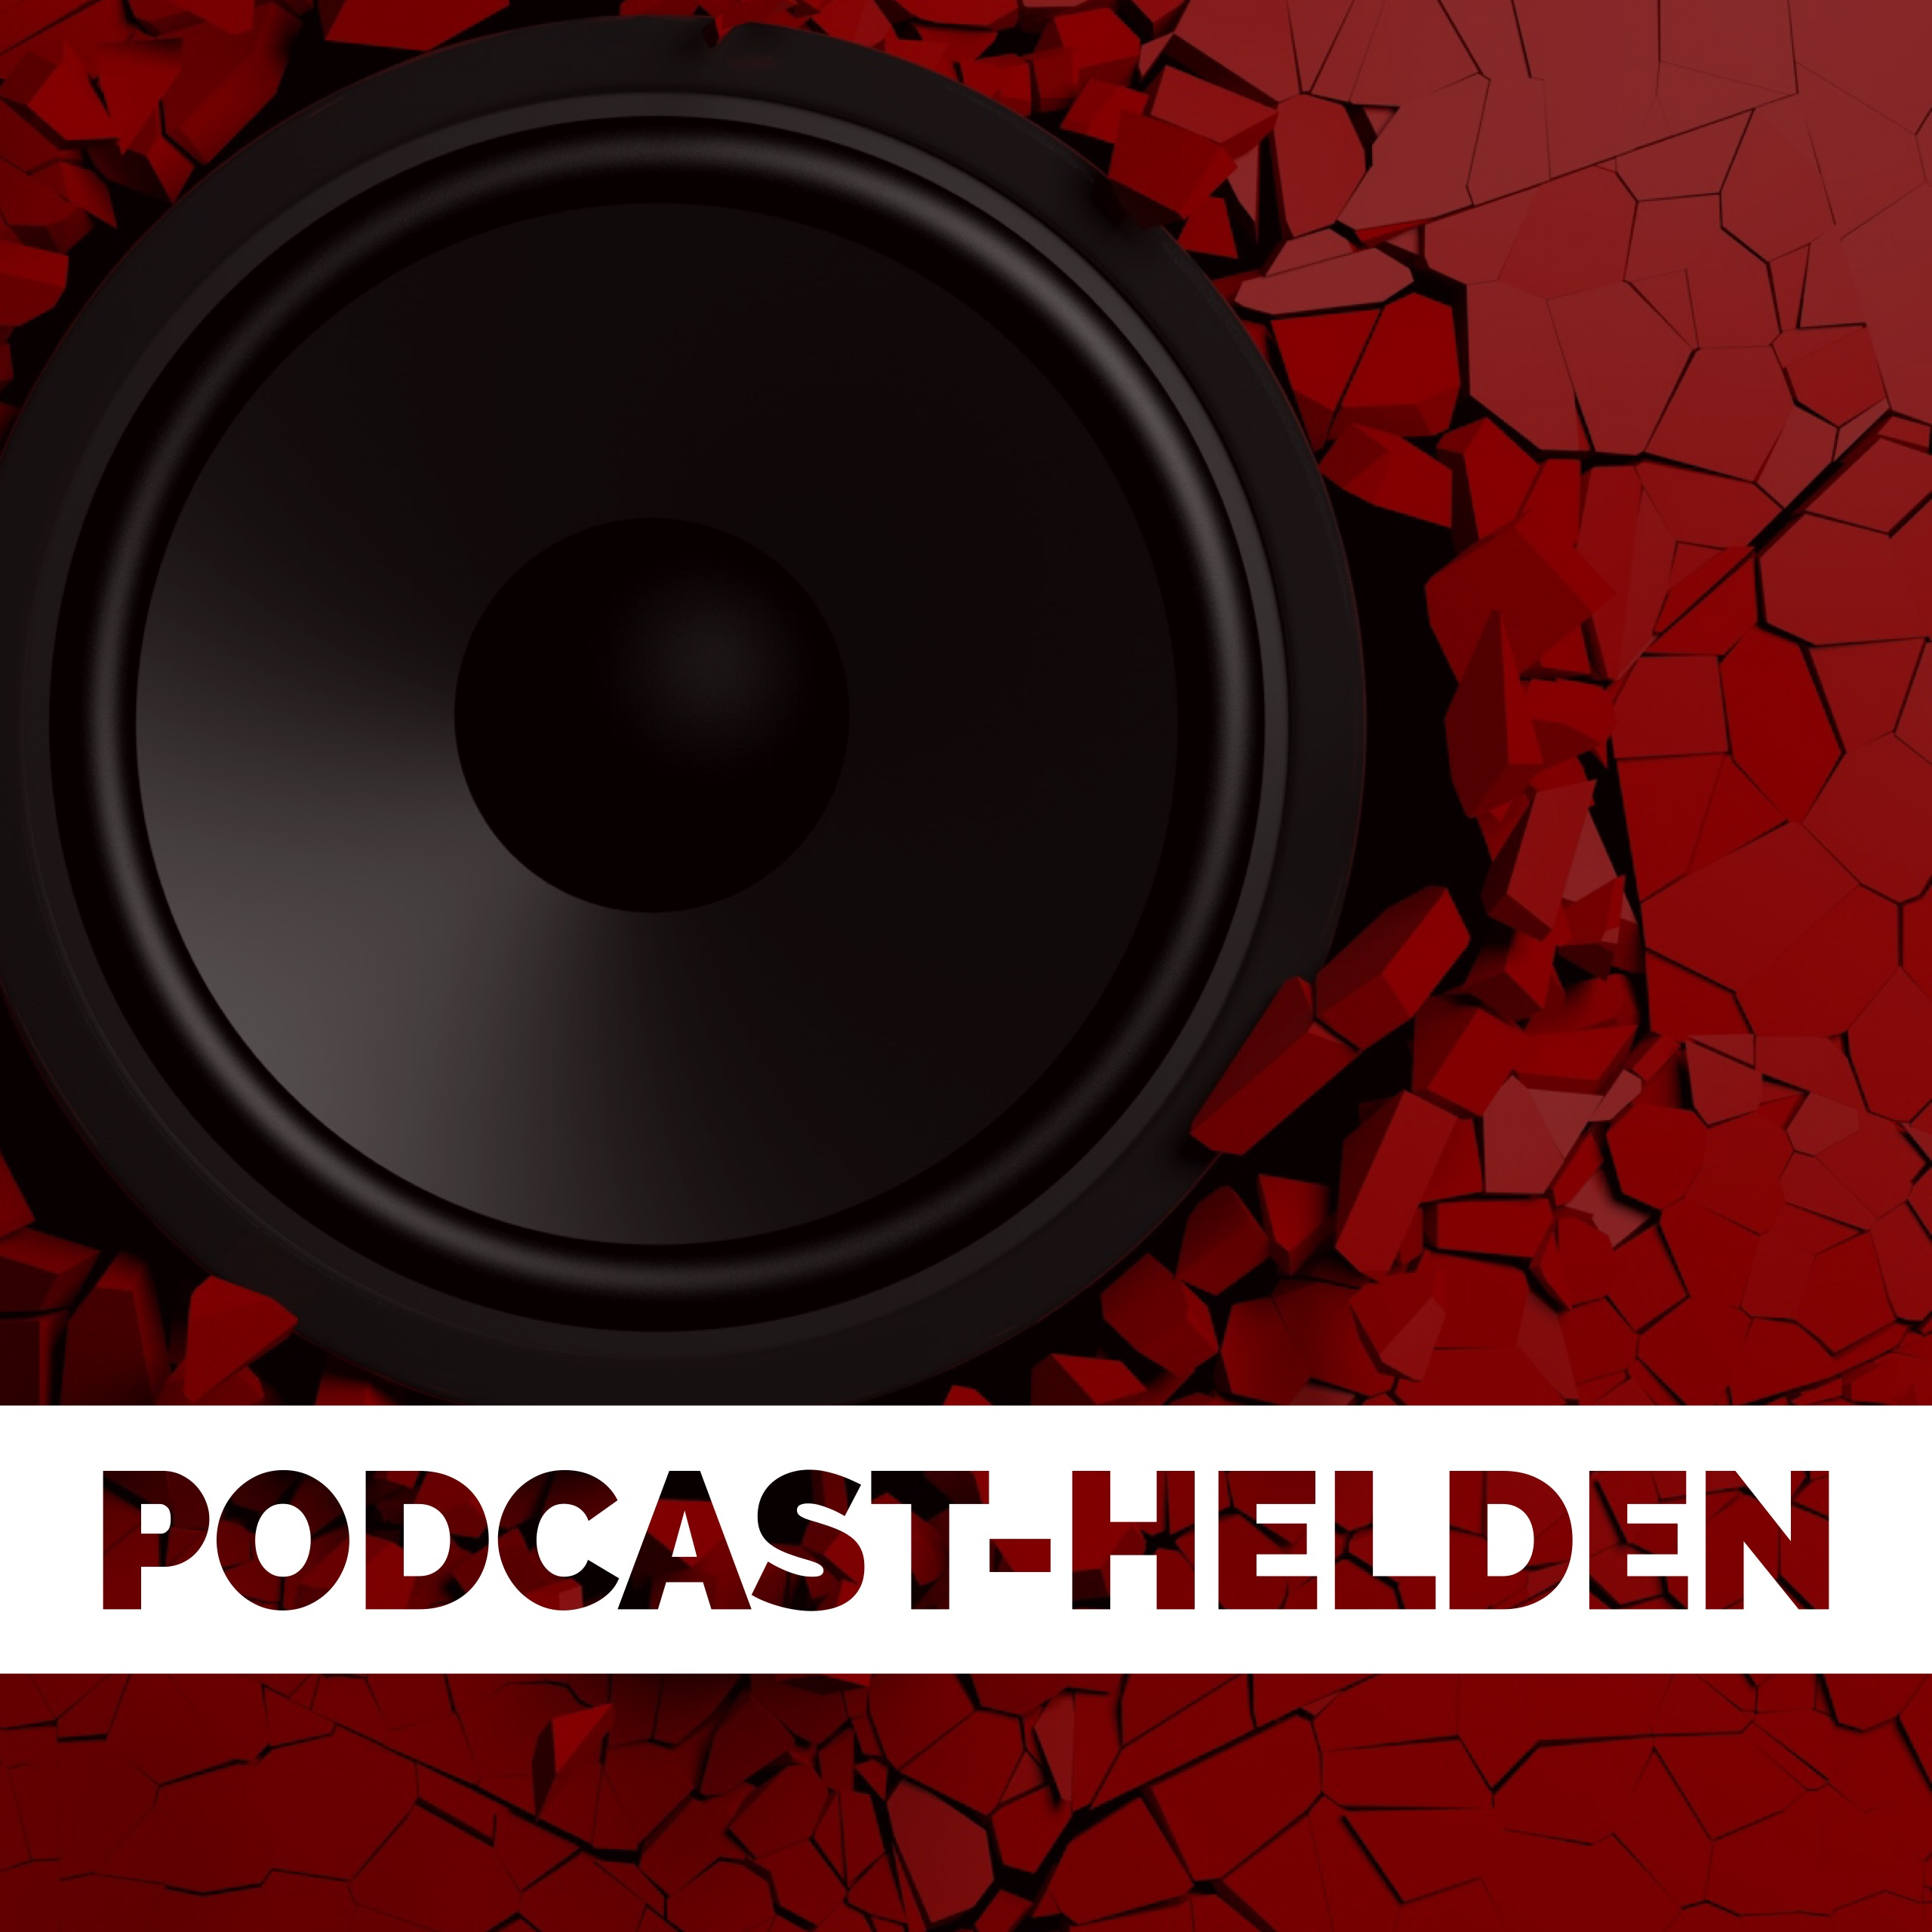 Podcast-Helden ON AIR | Podcasting in Business, Marketing und Vertrieb